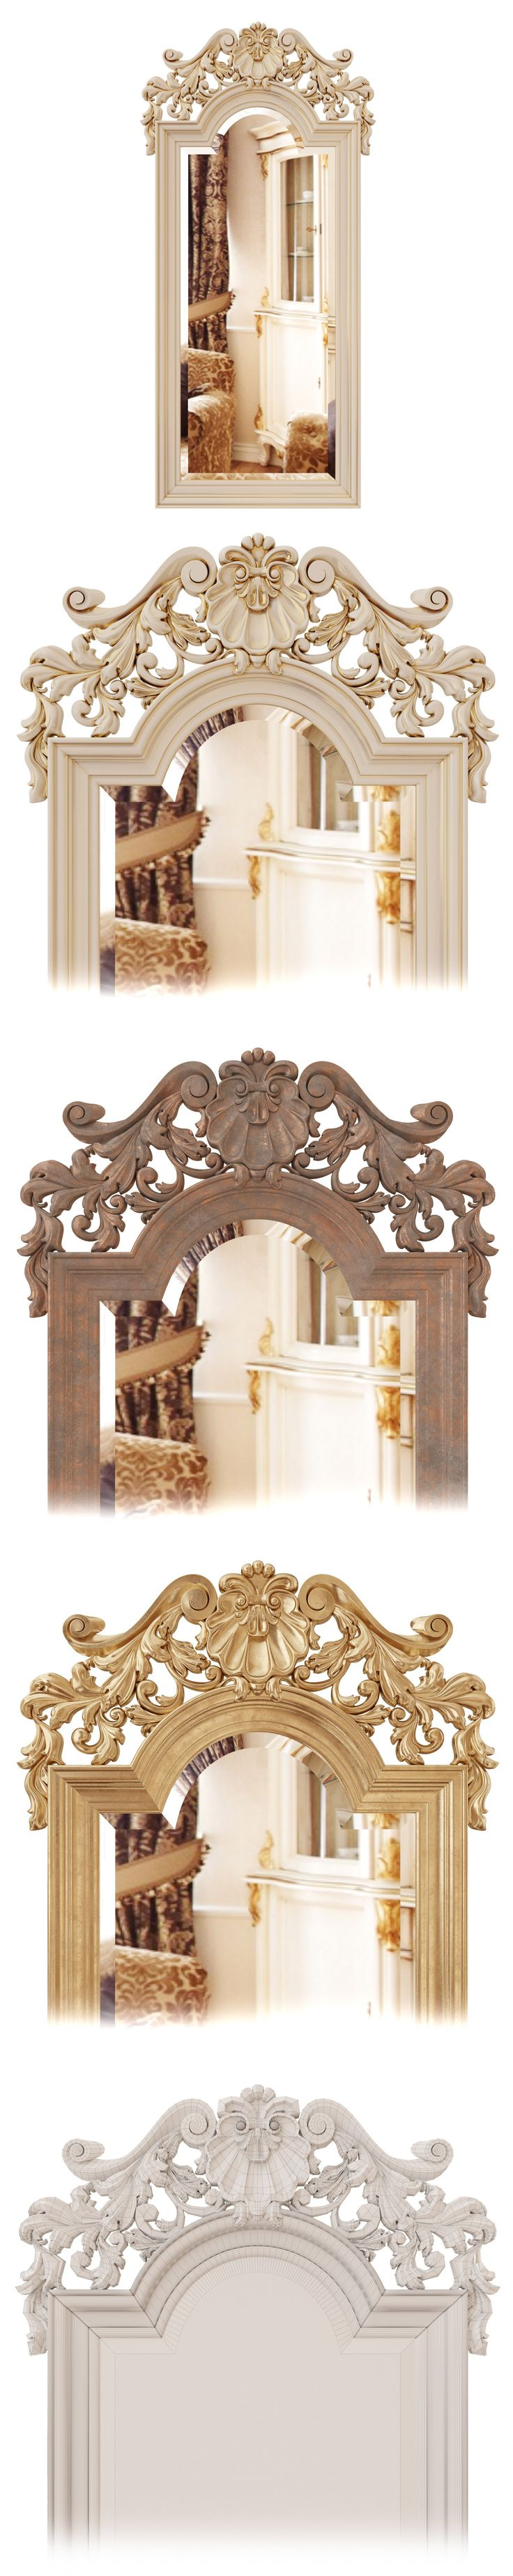 classic mirror 3d model and visualization made by Vividi group